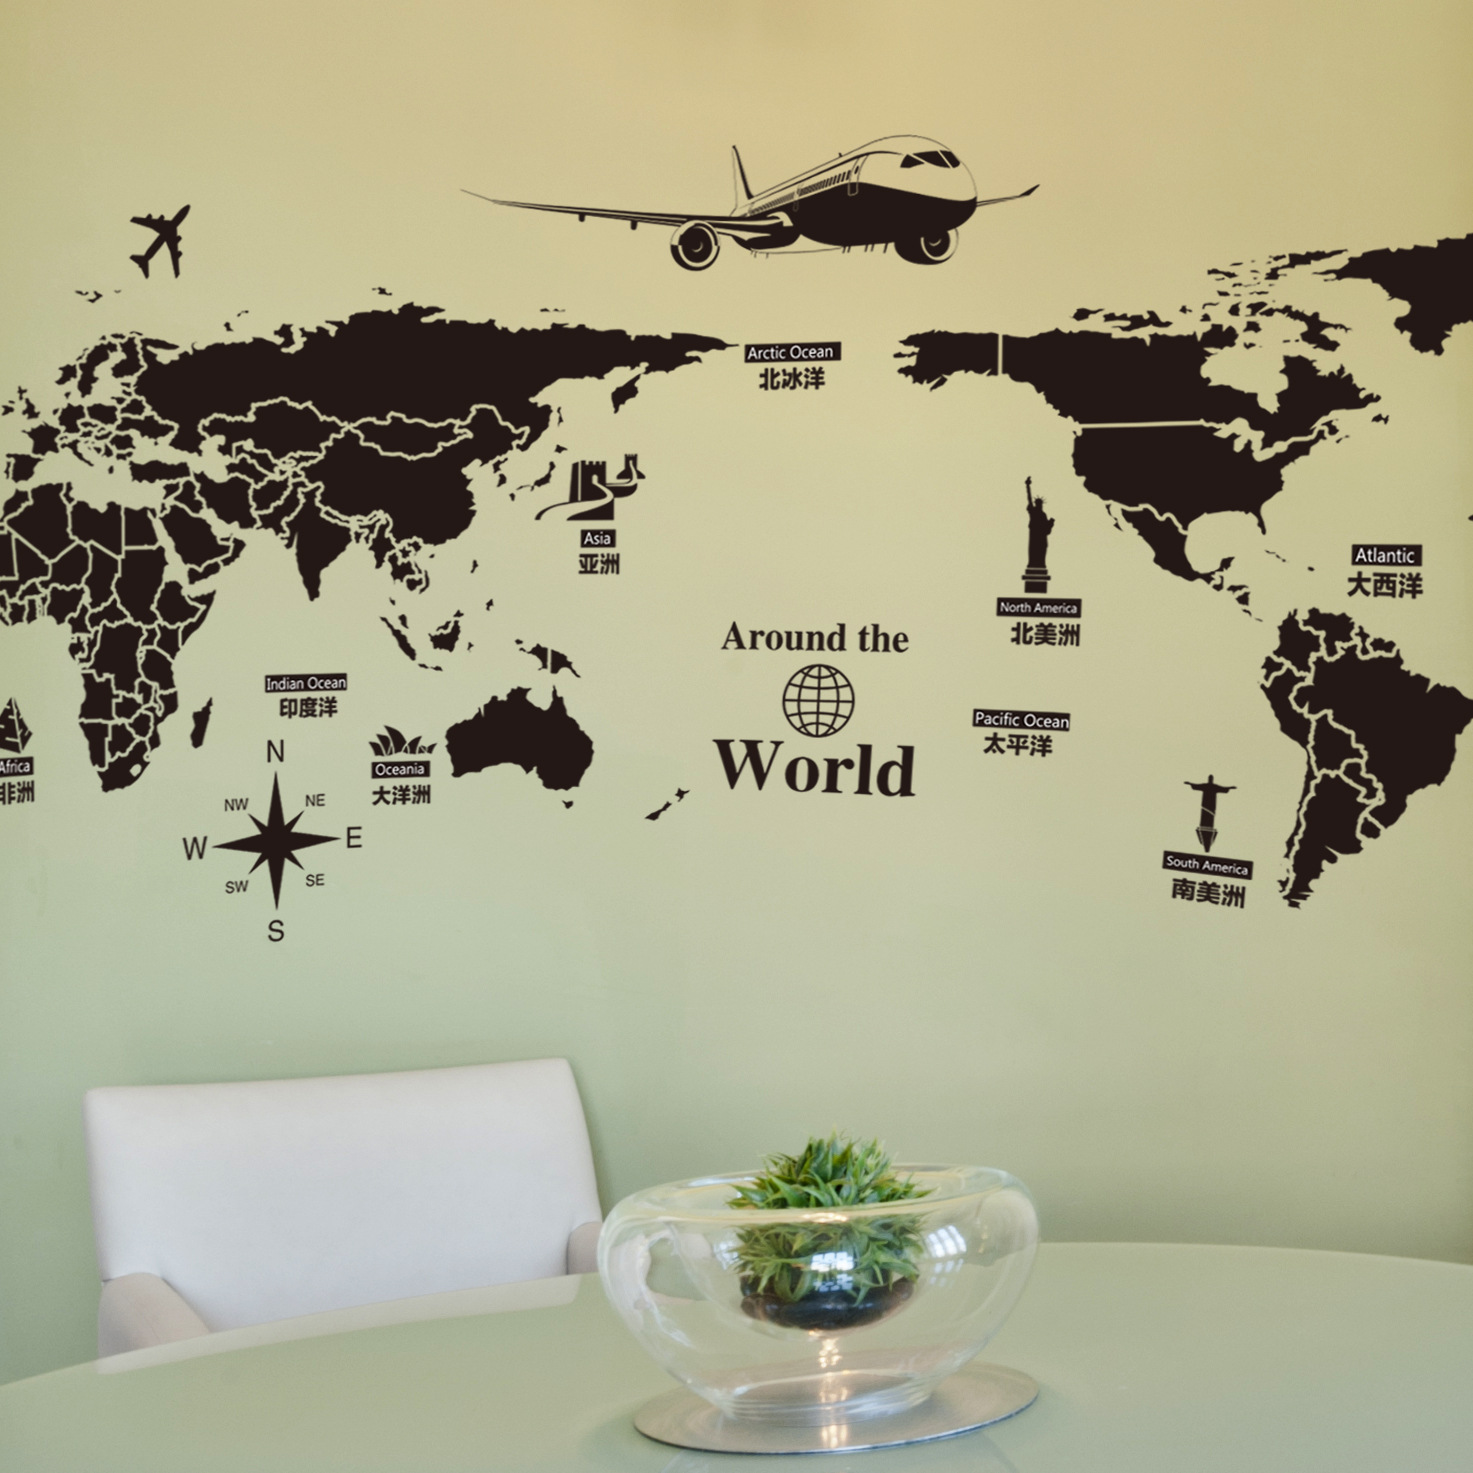 World Home Decor World Map Wall Stickers Removable Pvc Map Of The World Art